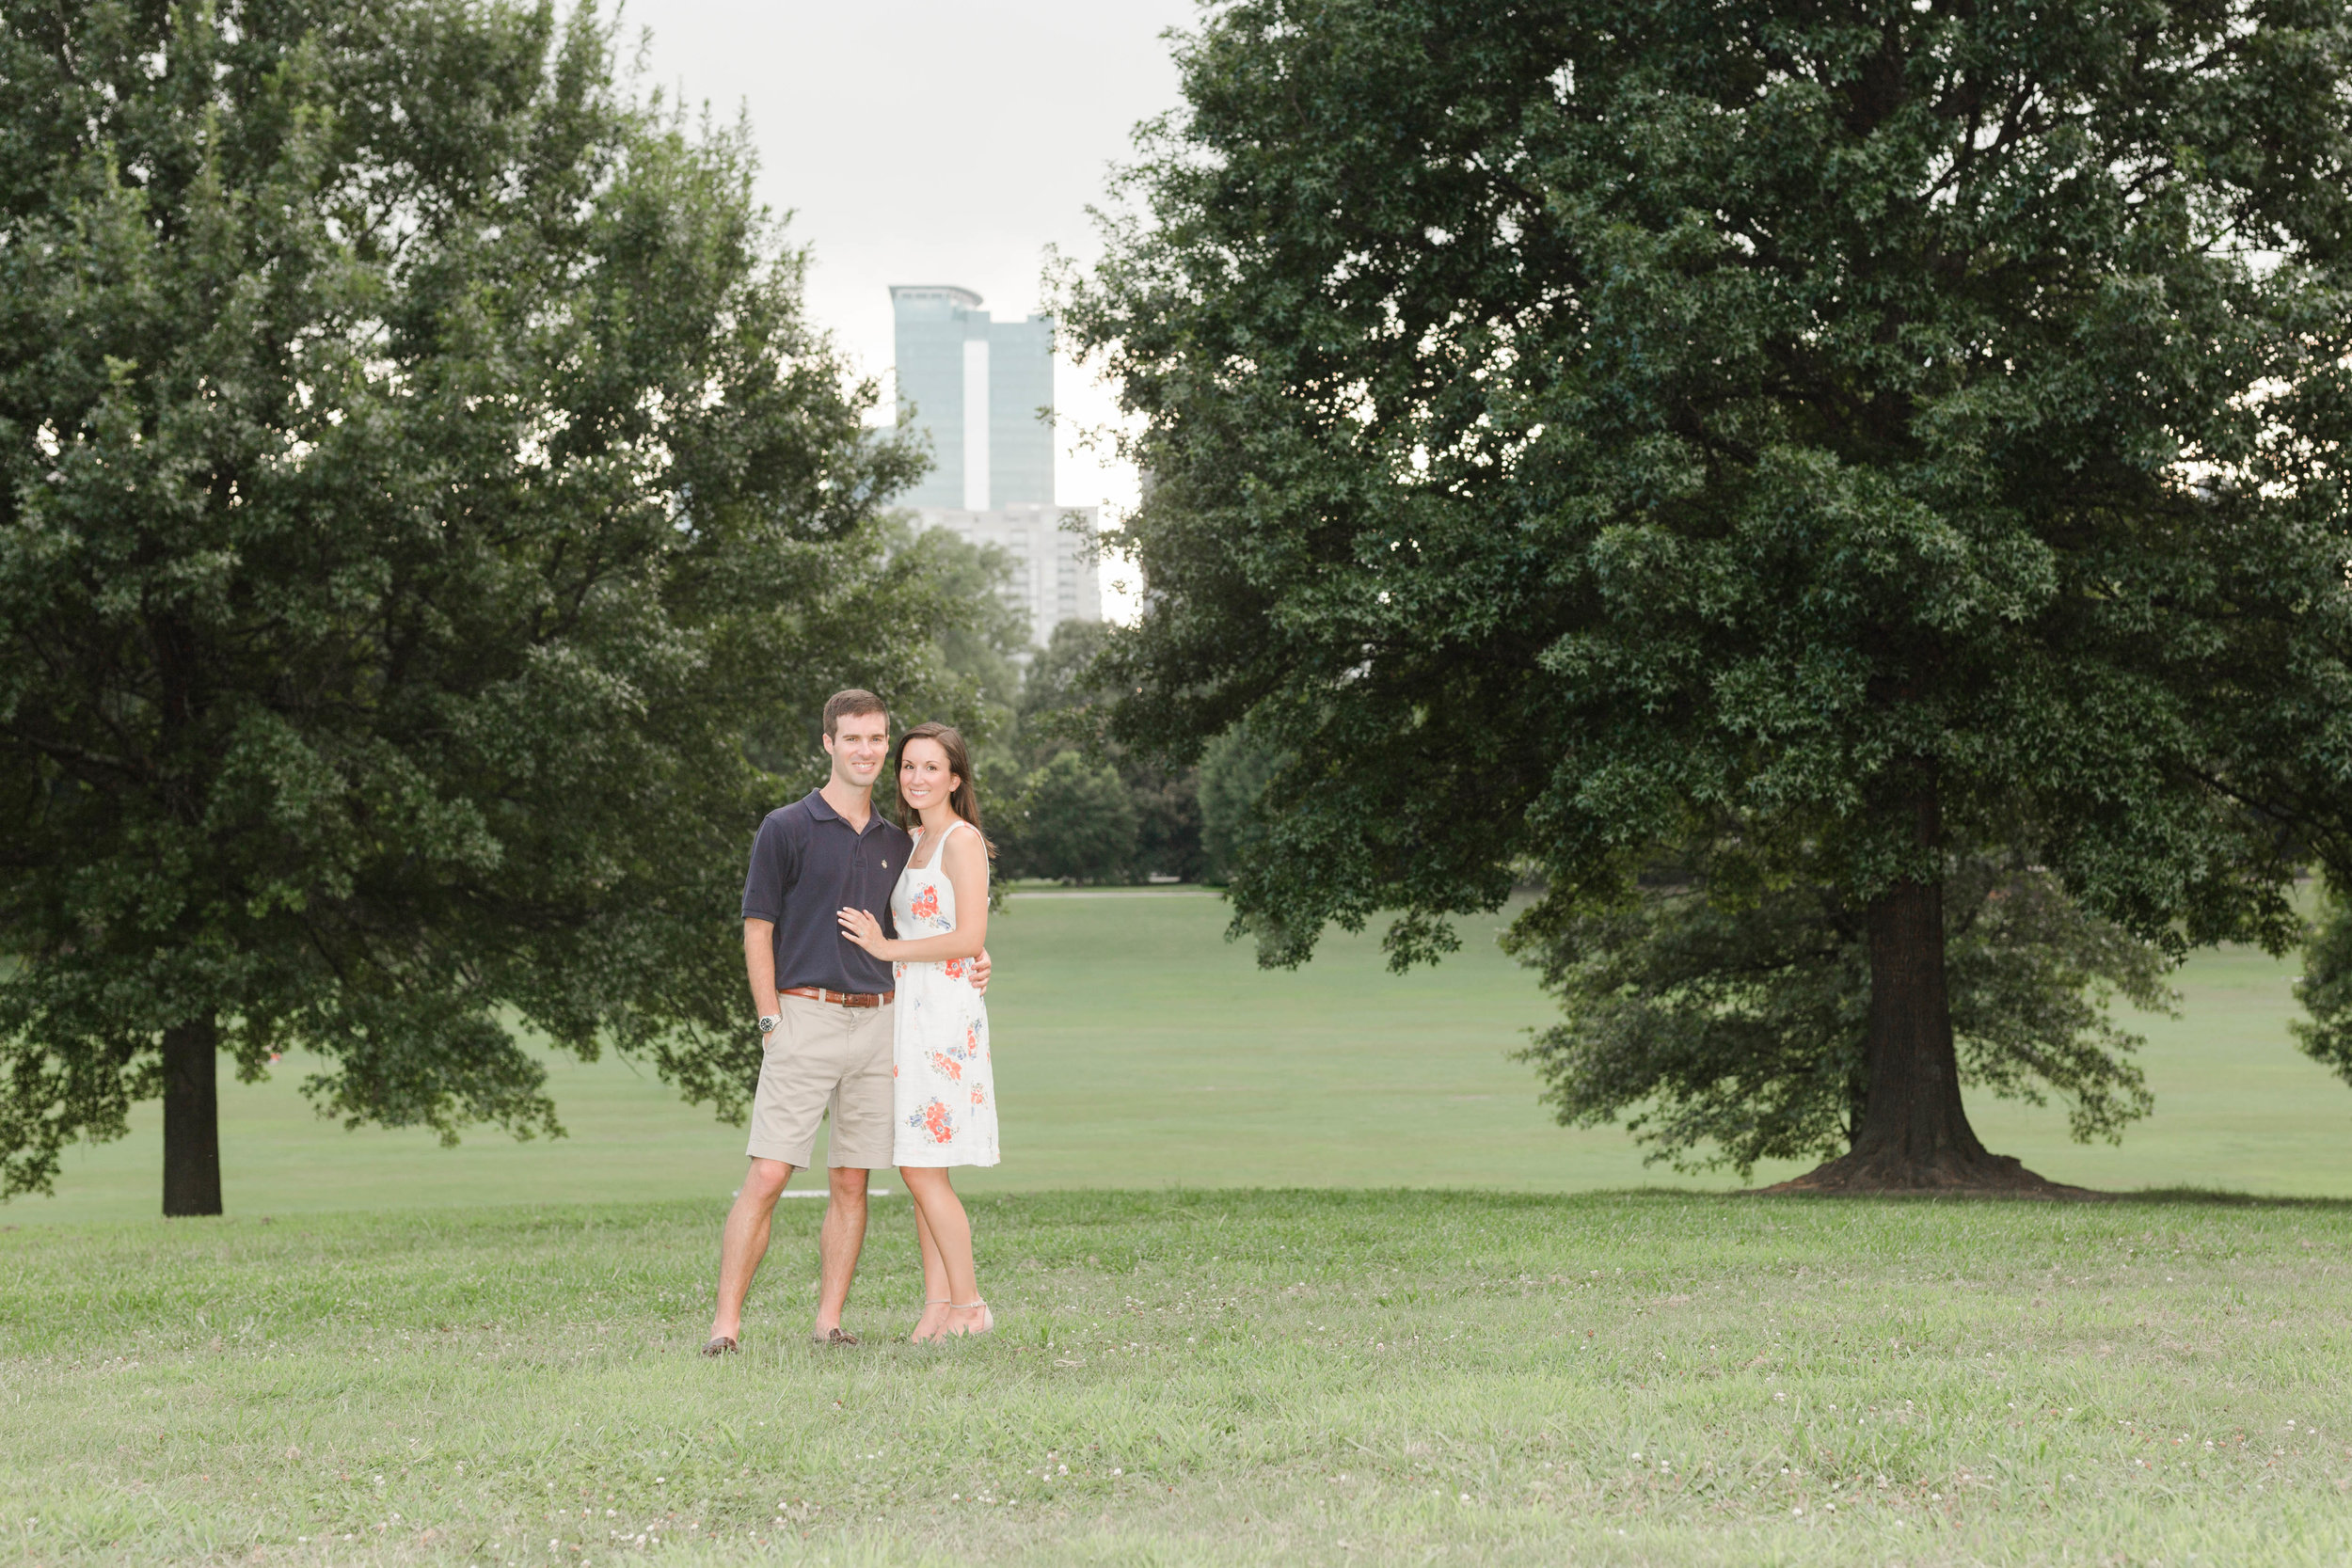 Ellen_Tom_Engagement_Website-113.JPG